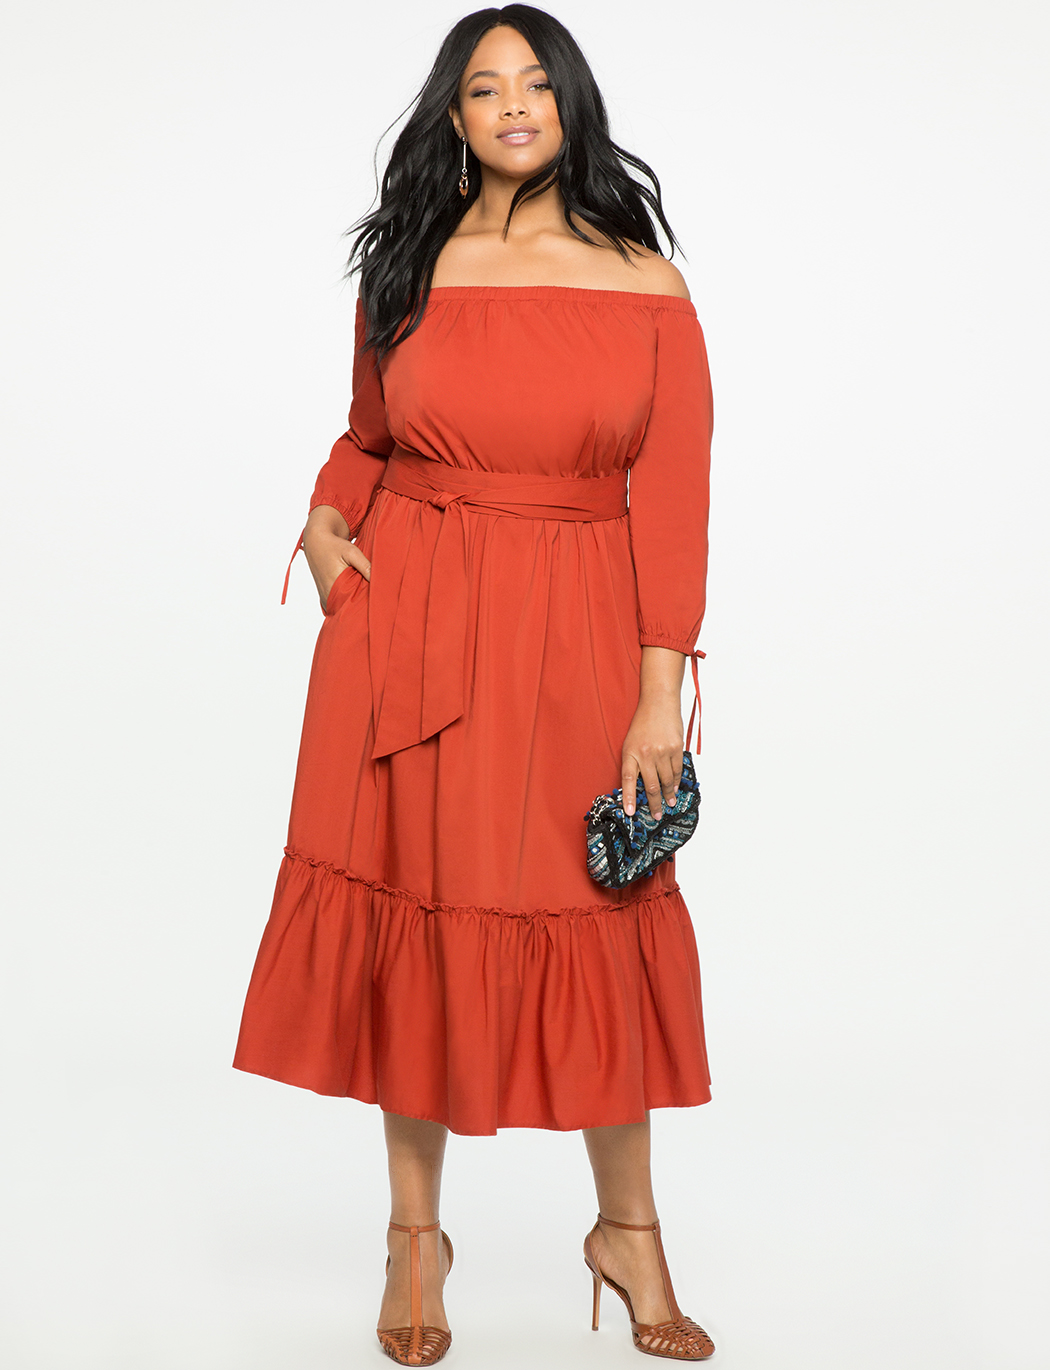 Plus Size Maxi Dresses Online India